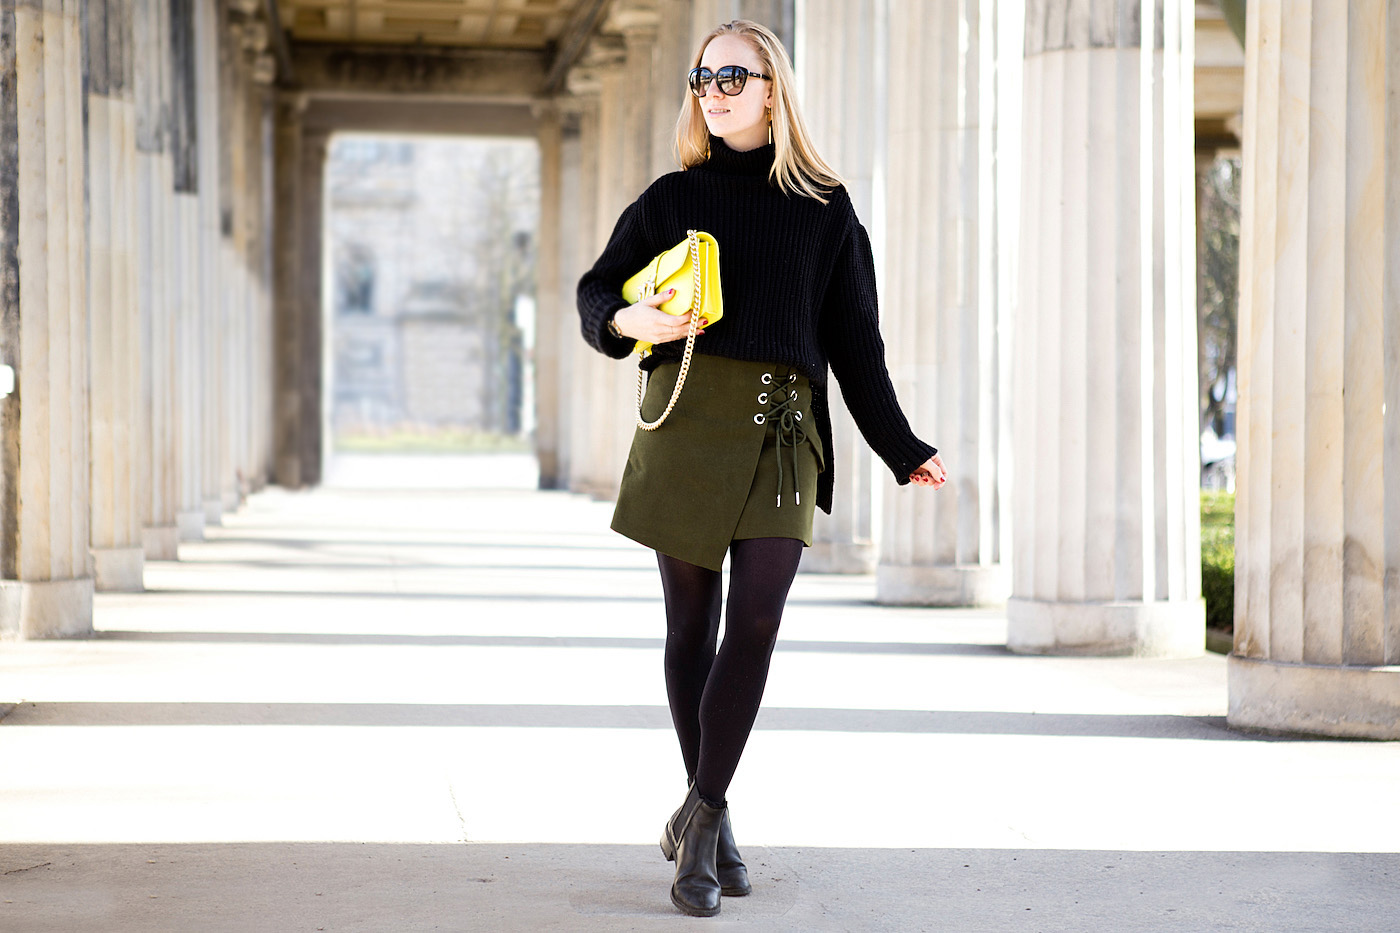 the golden bun - olive suede leather skirt chicwish, pinko love bag, madeleine issing jewelery